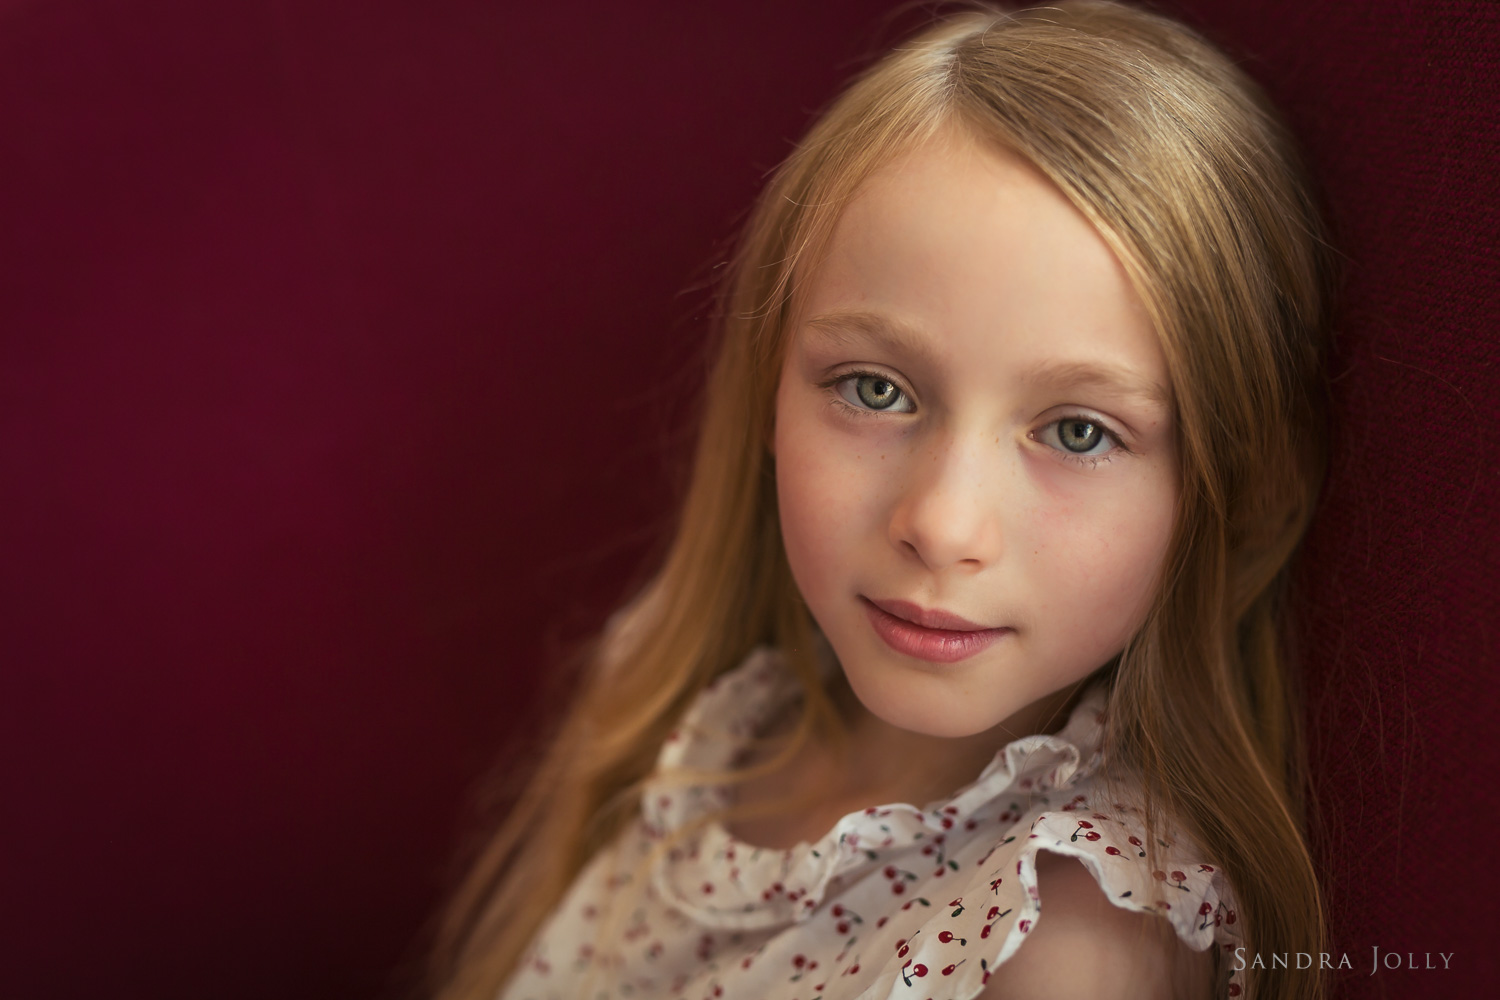 Portrait-of-a-girl-in-cherry-top-by-Stockholm-photographer-Sandra-Jolly.jpg